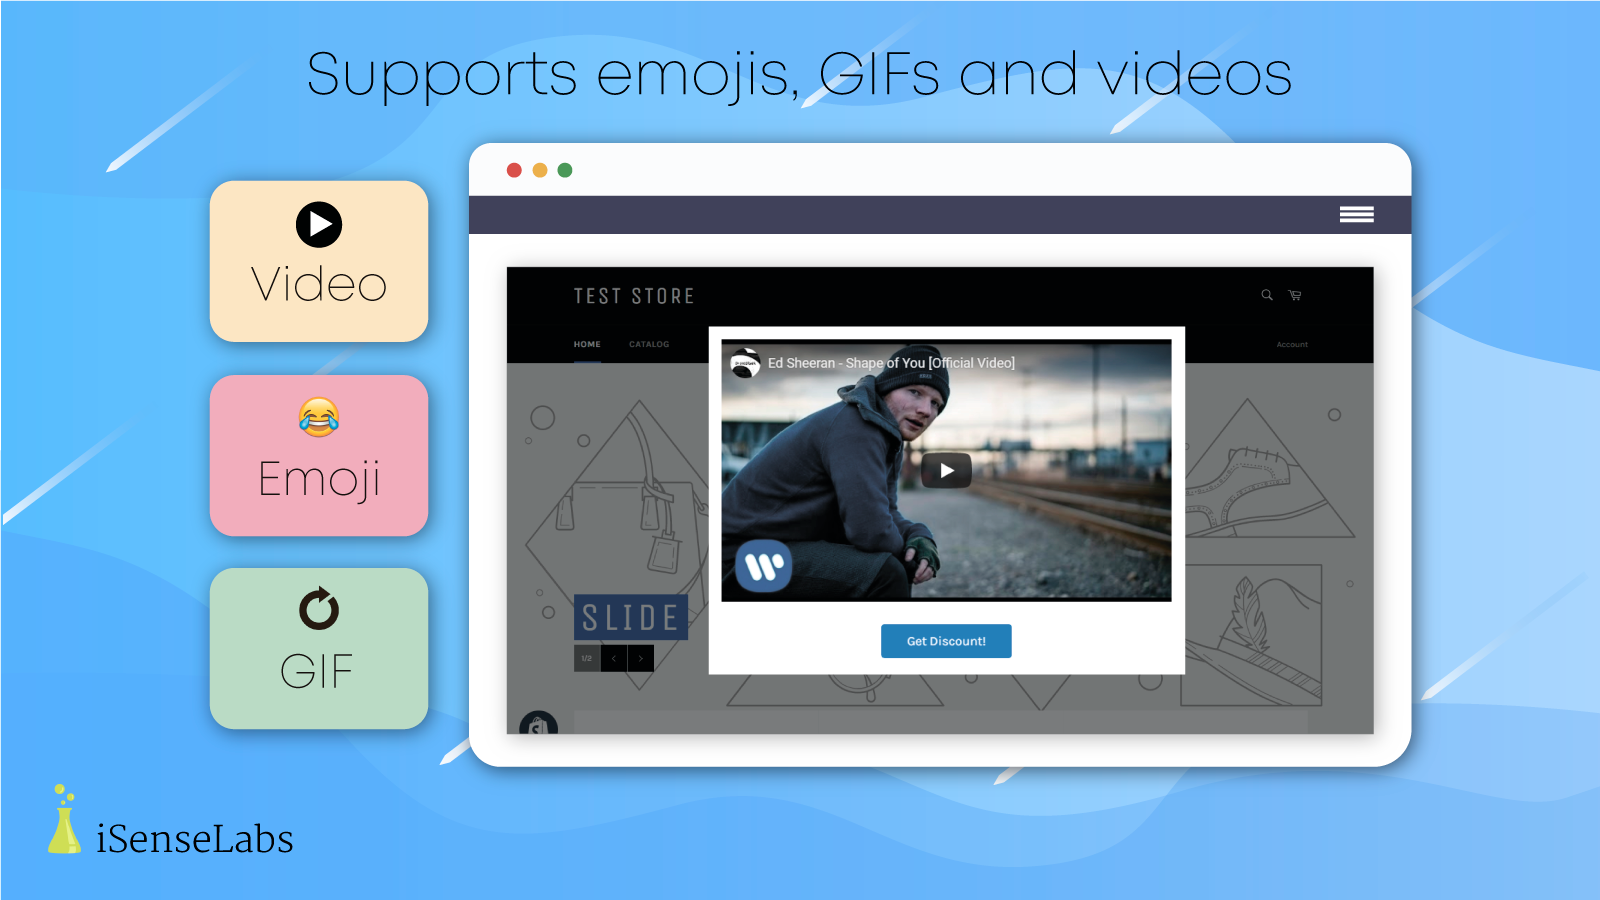 Supports emoji, gifs and videos